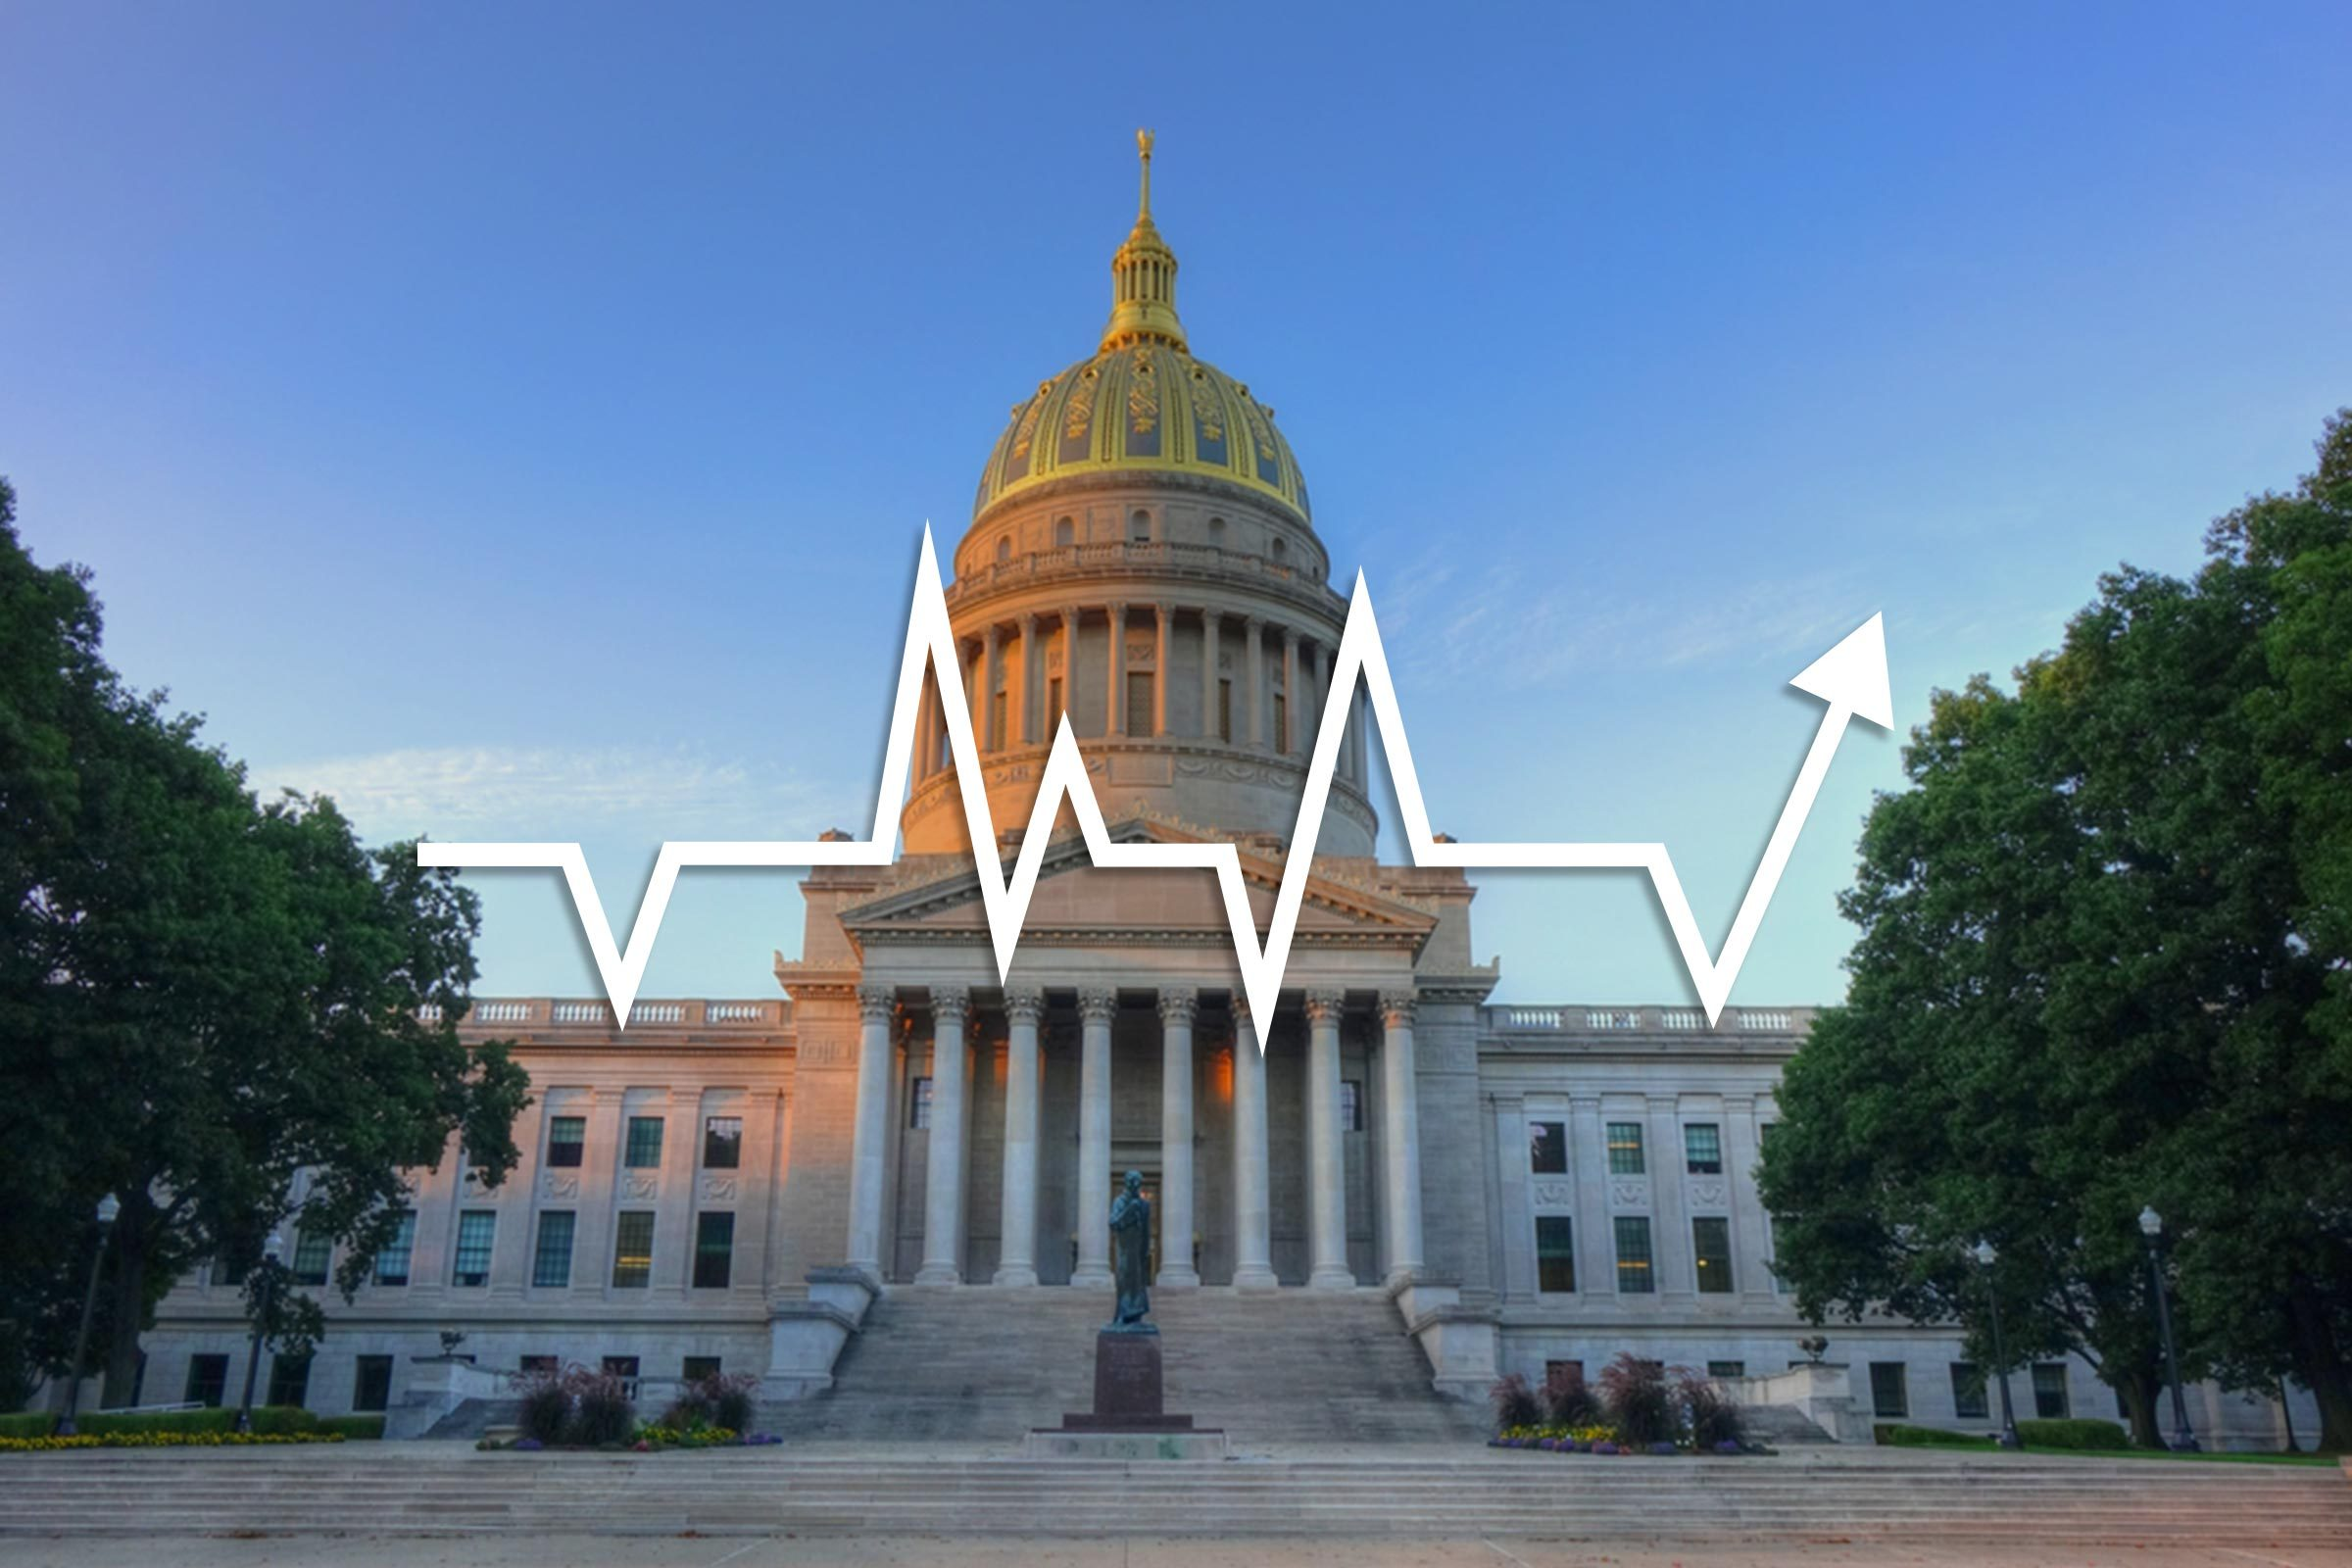 The States with the Most (and Least) Deadly Heart Attacks